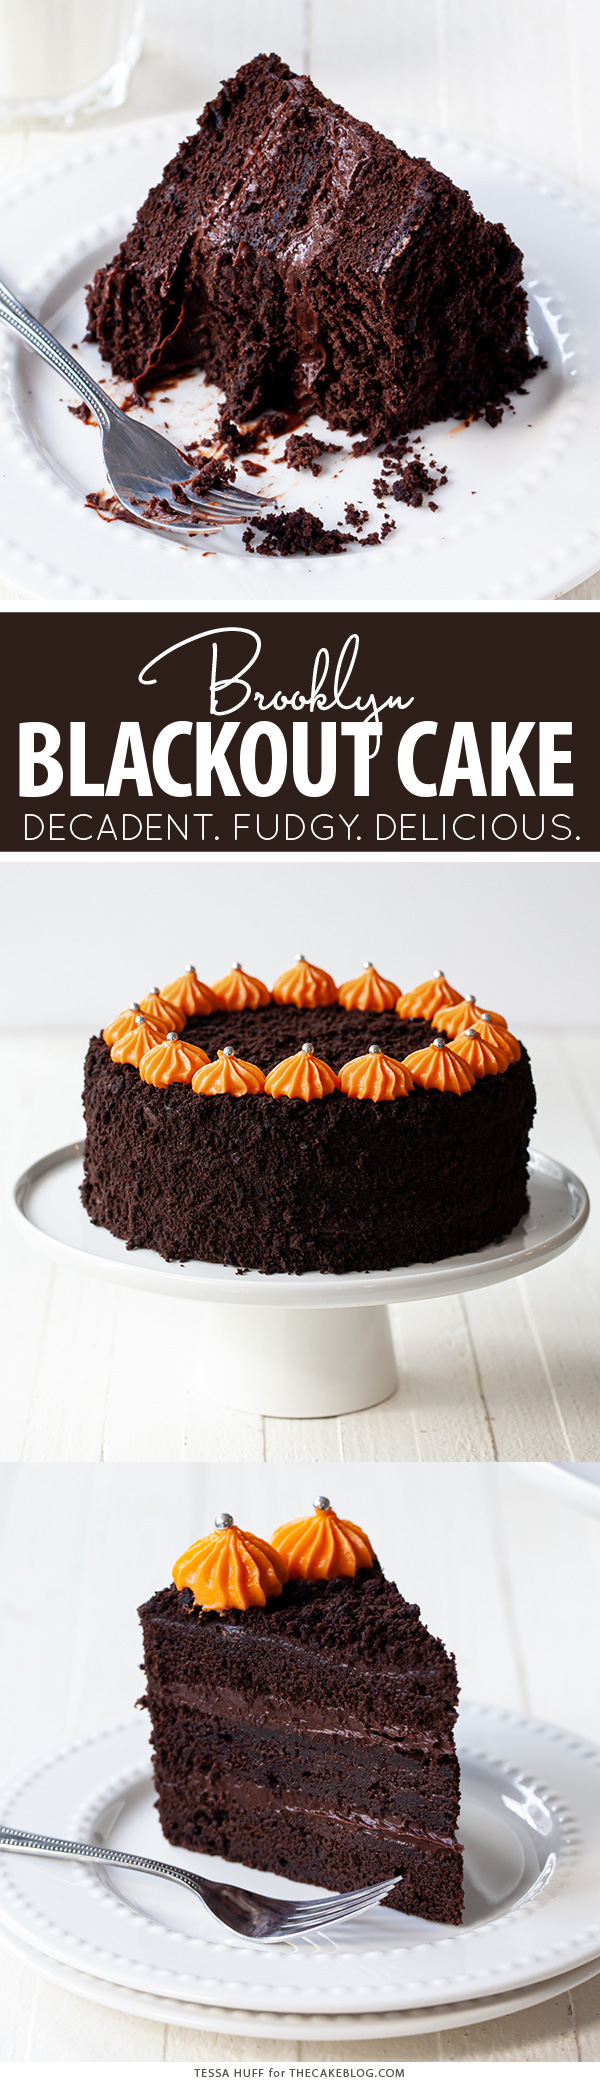 Brooklyn Blackout Cake - a decadent chocolate cake with fudgy chocolate pudding frosting | by Tessa Huff for TheCakeBlog.com